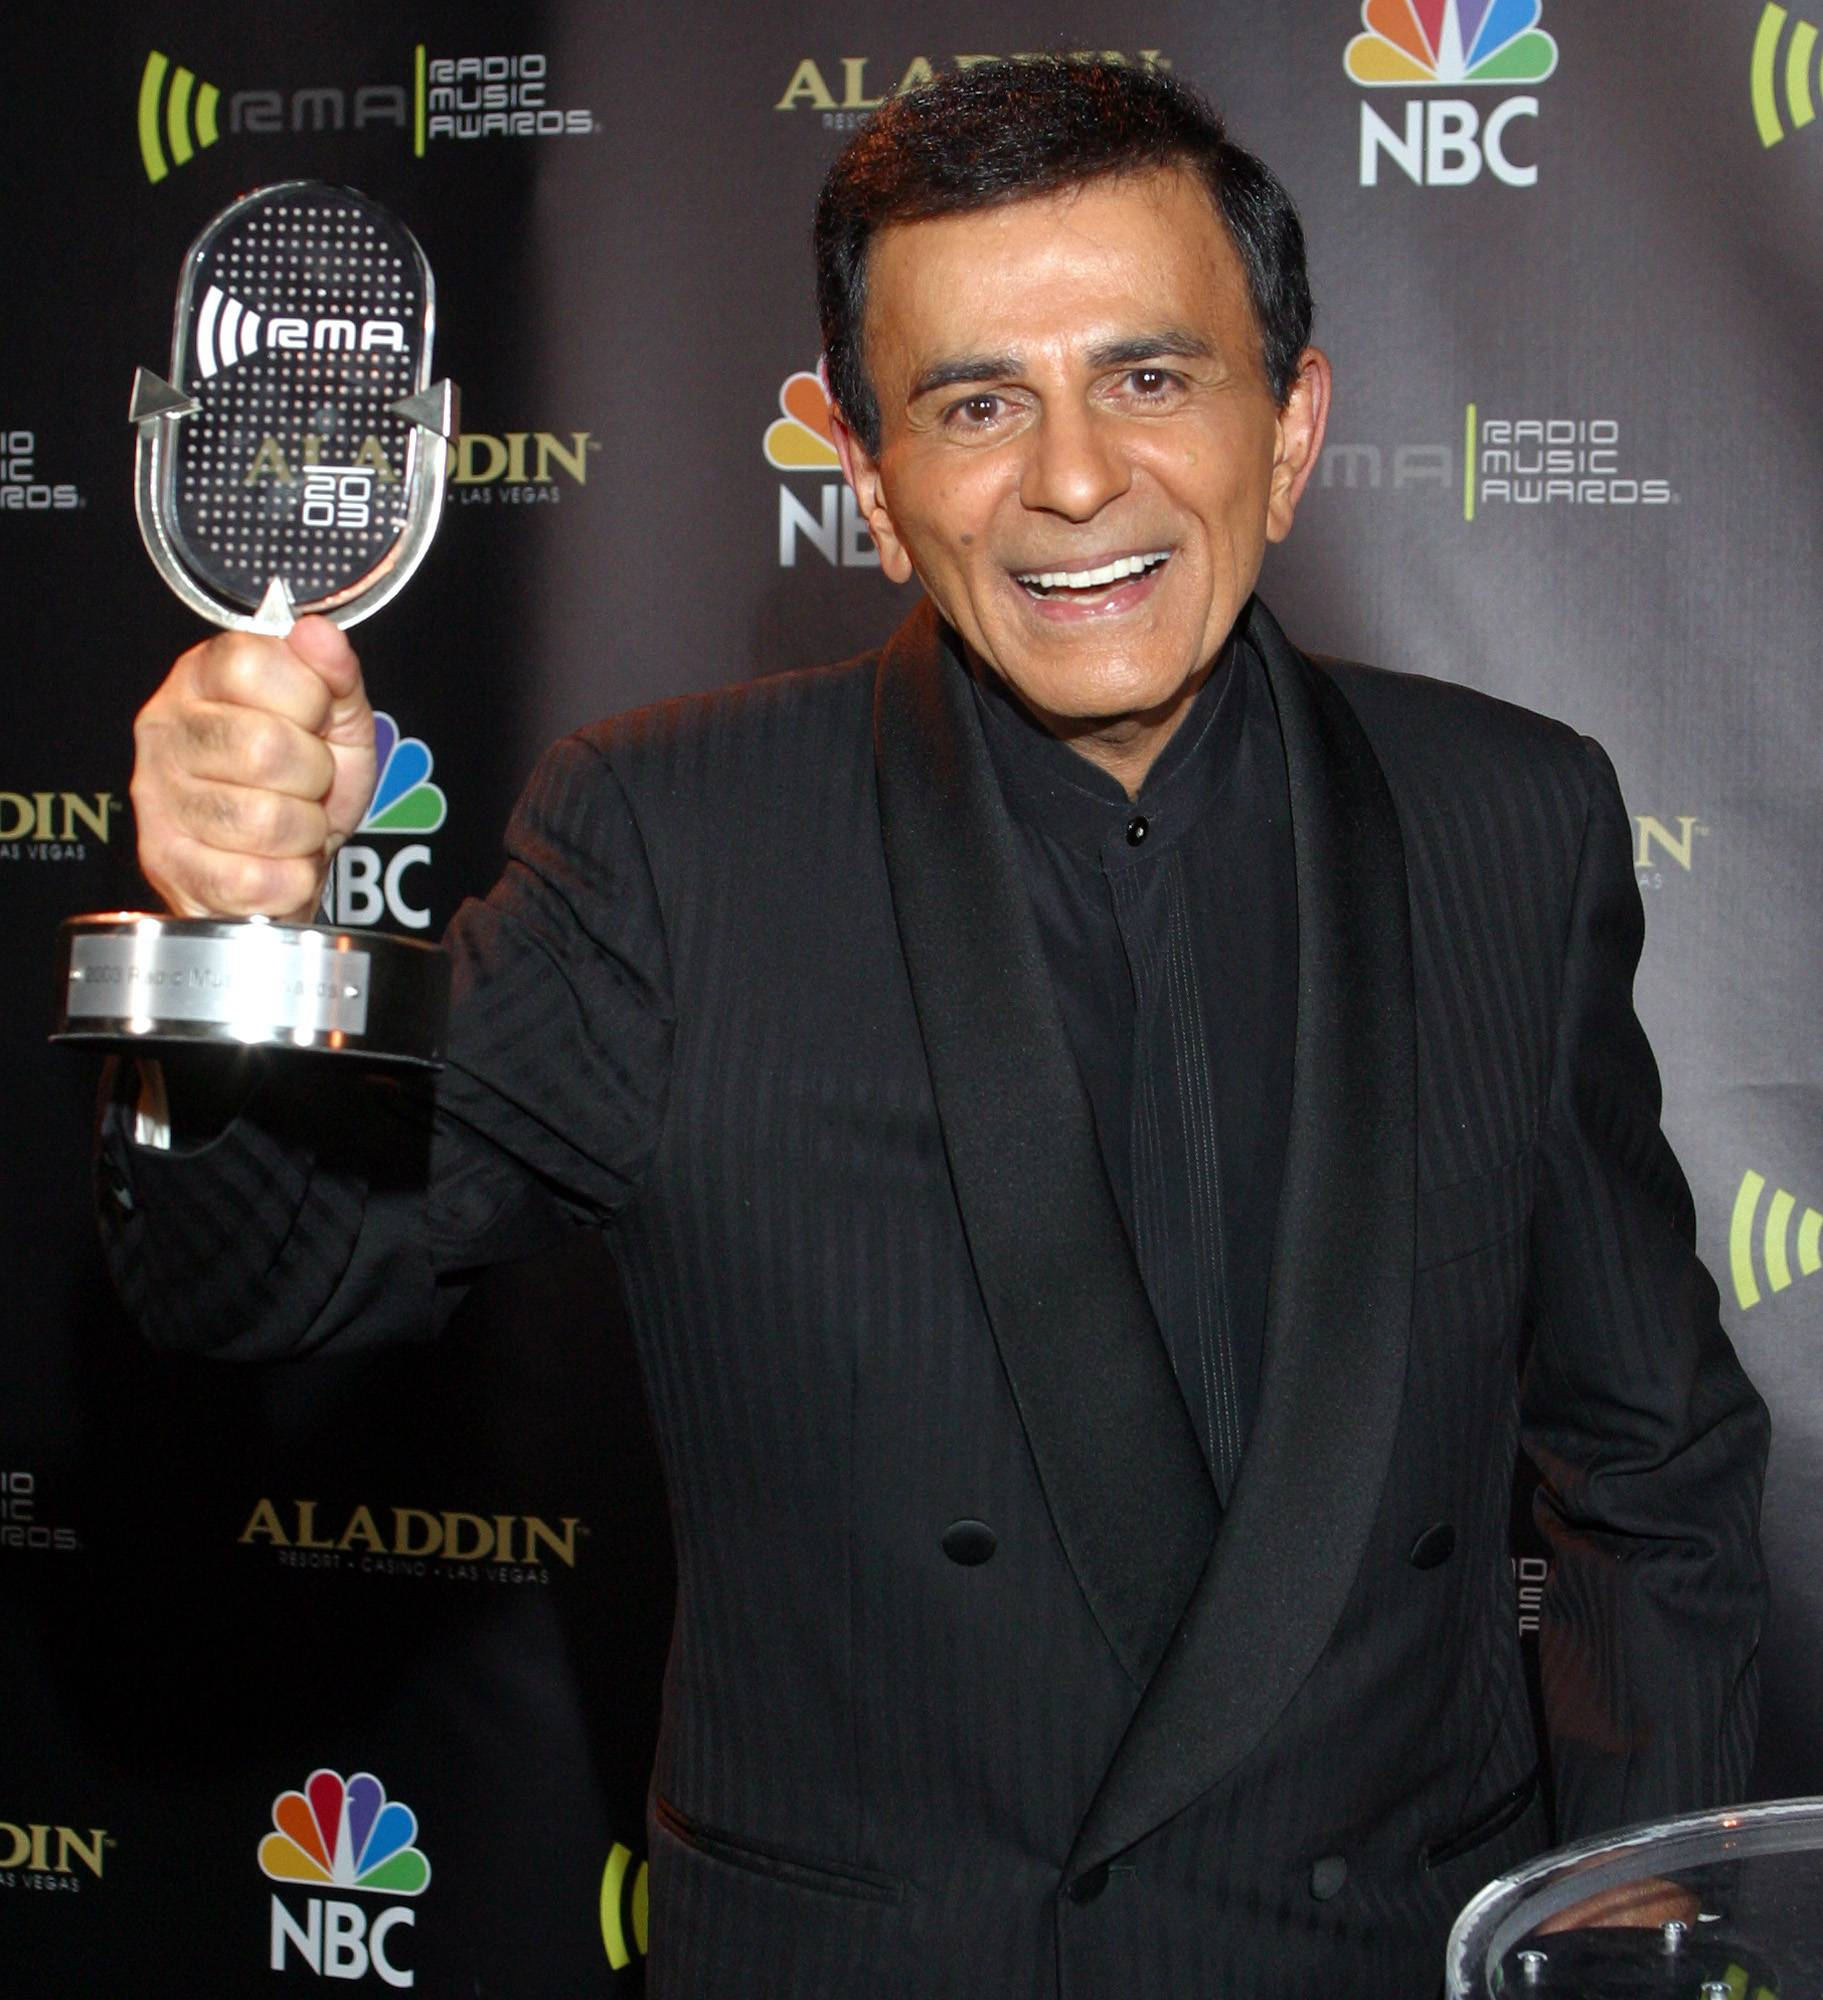 In this Oct. 27, 2003, file photo, Casey Kasem received the Radio Icon award during The 2003 Radio Music Awards at the Aladdin Resort and Casino in Las Vegas. Kasem, the smooth-voiced radio broadcaster who became the king of the top 40 countdown, died Sunday.